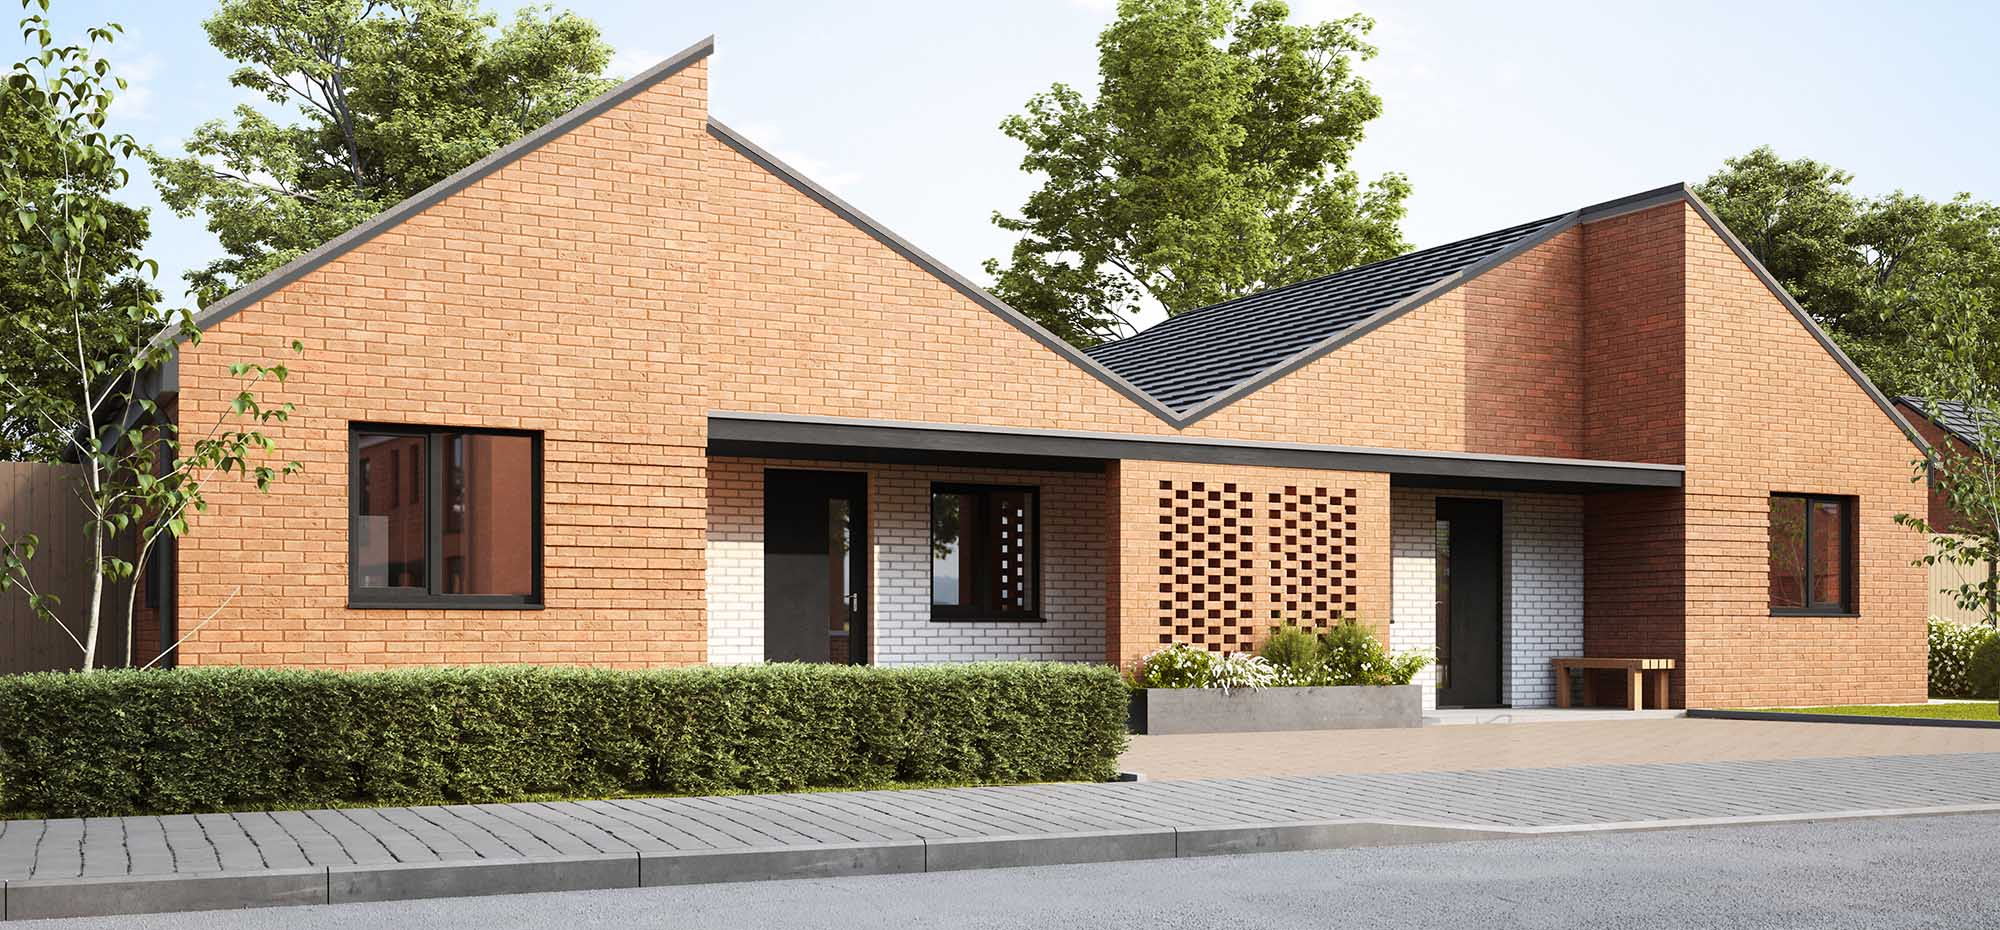 This image shows an external view of the Violet bungalow from Shape Homes York.